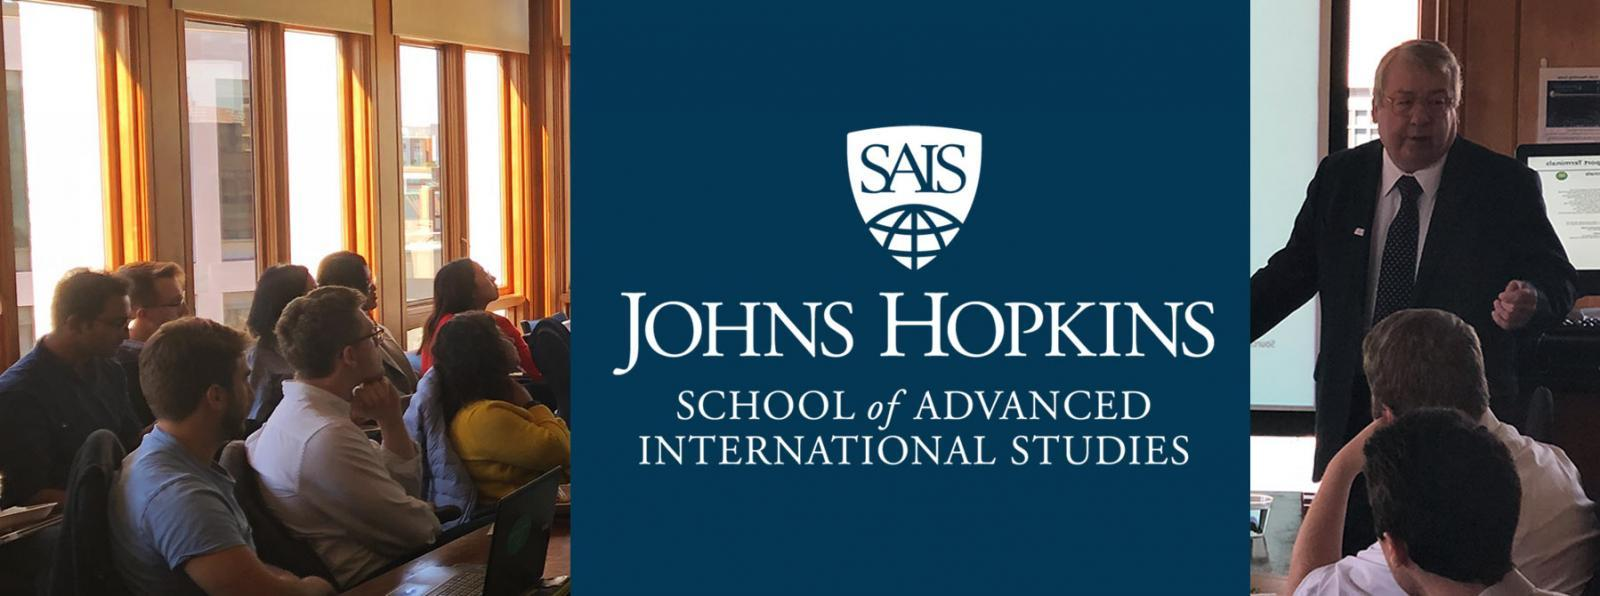 Barry at John Hopkins SAIS